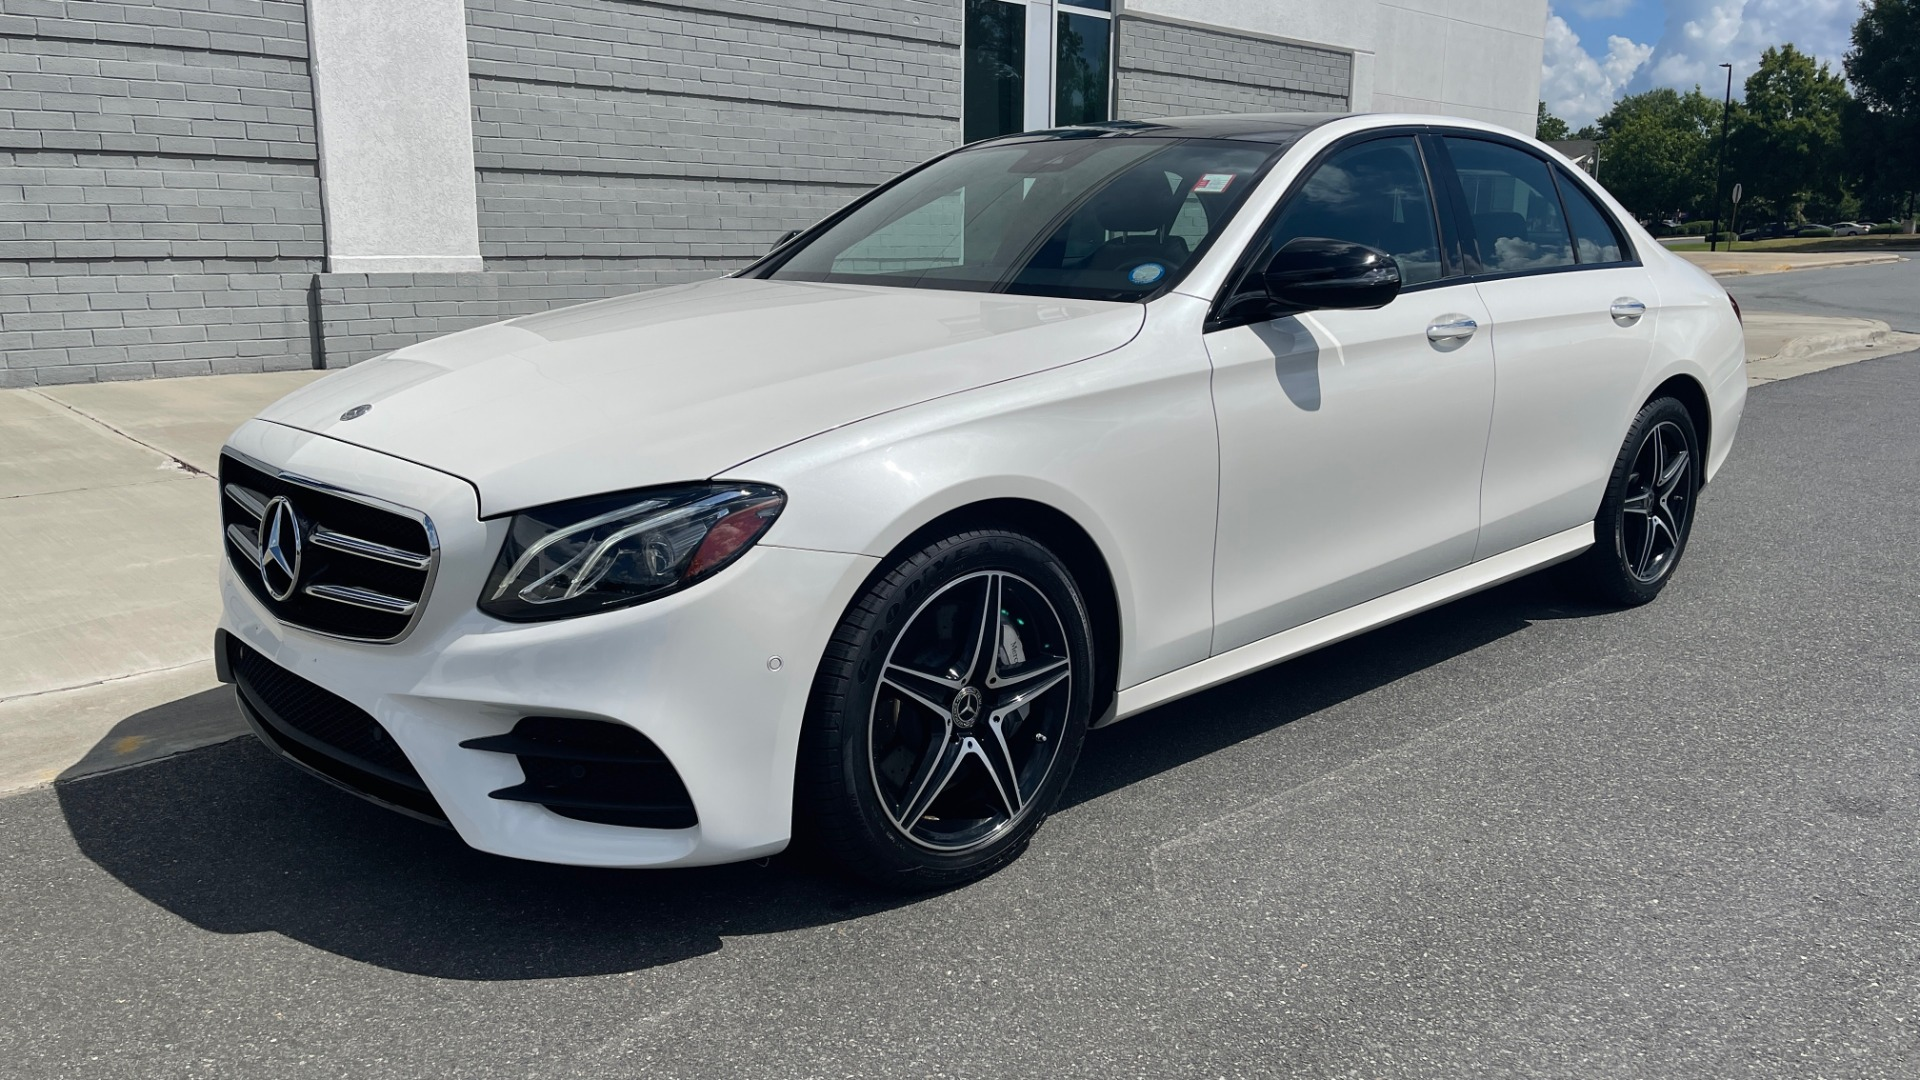 Used 2018 Mercedes-Benz E-CLASS E 300 PREMIUM / NIGHT PKG / PANO-ROOF / BURMESTER / REARVIEW for sale $42,399 at Formula Imports in Charlotte NC 28227 3